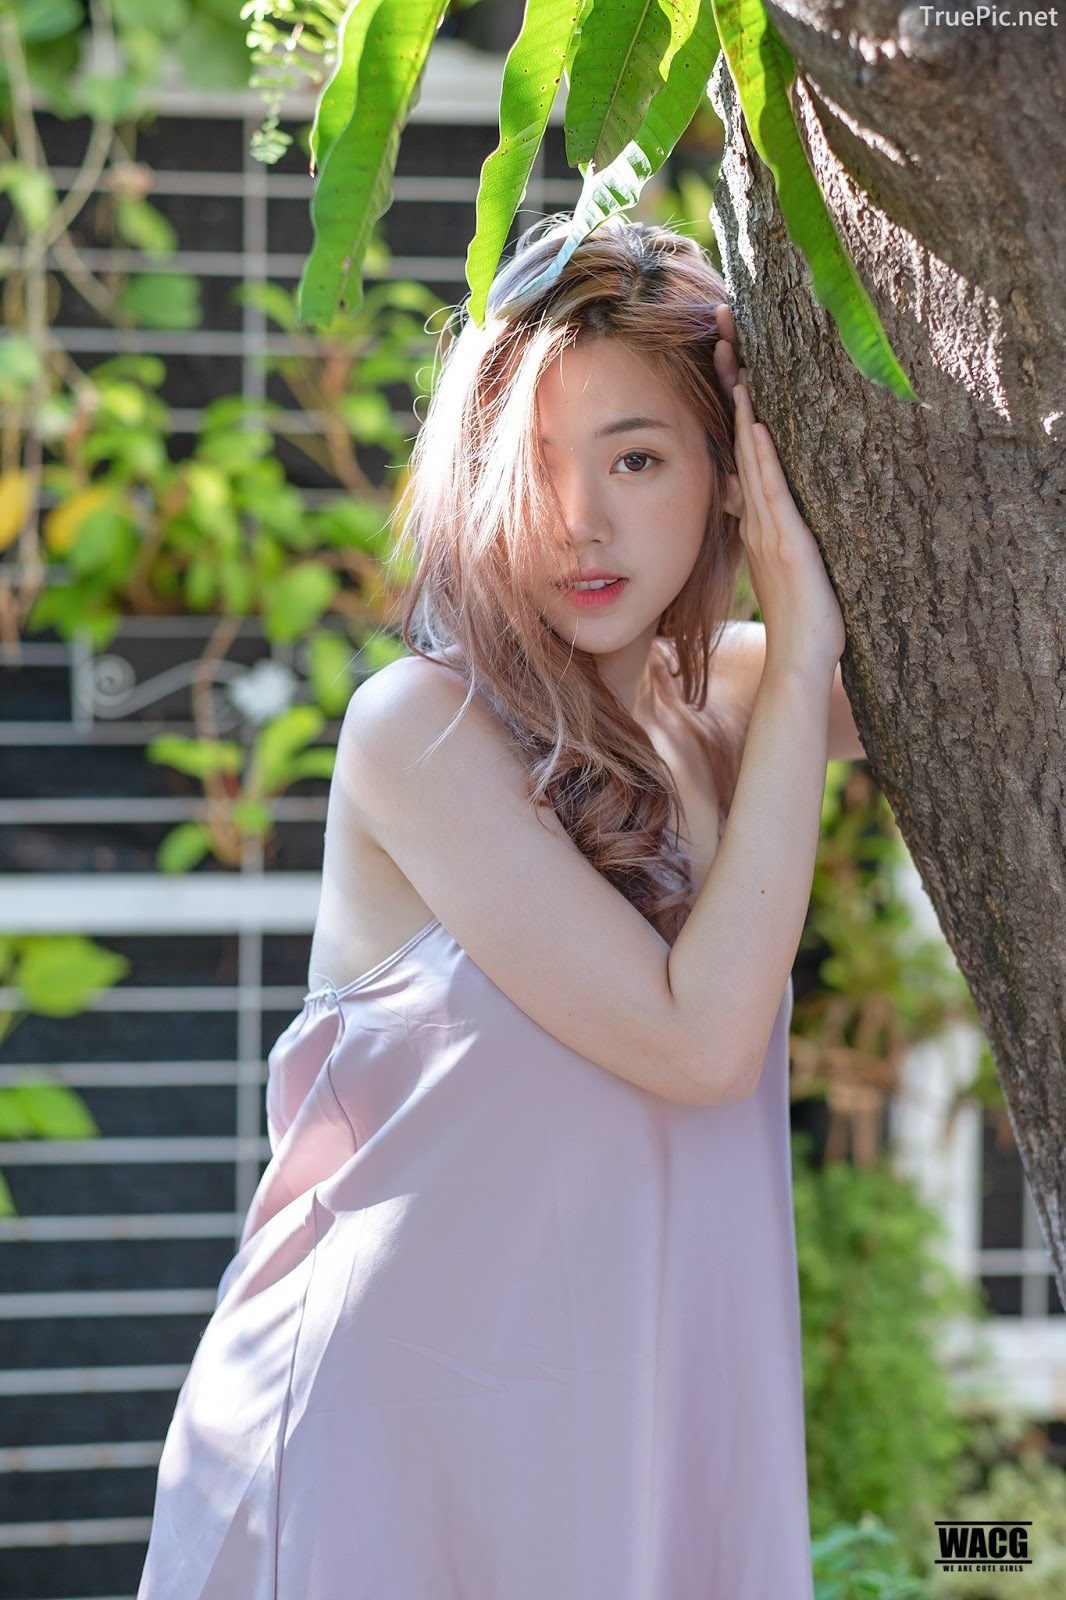 Hot Girl Thailand - Nilawan Iamchuasawad - Beauty Shines From Her In The Morning - TruePic.net - Picture 8